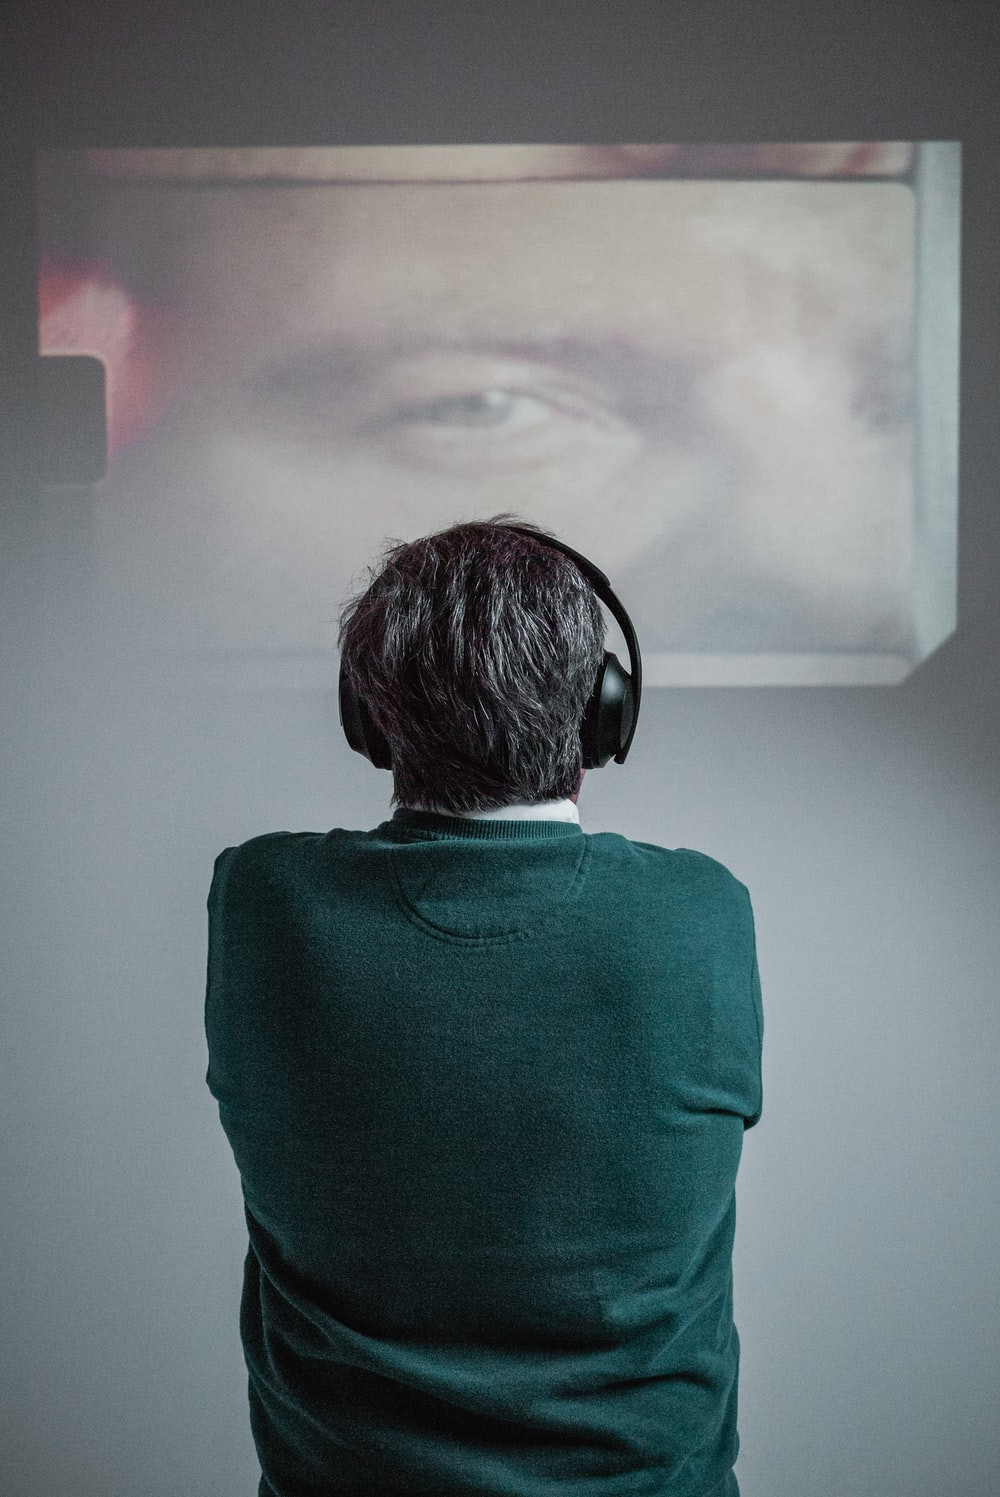 person wearing green shirt using black headphones while standing and facing back and watching movie